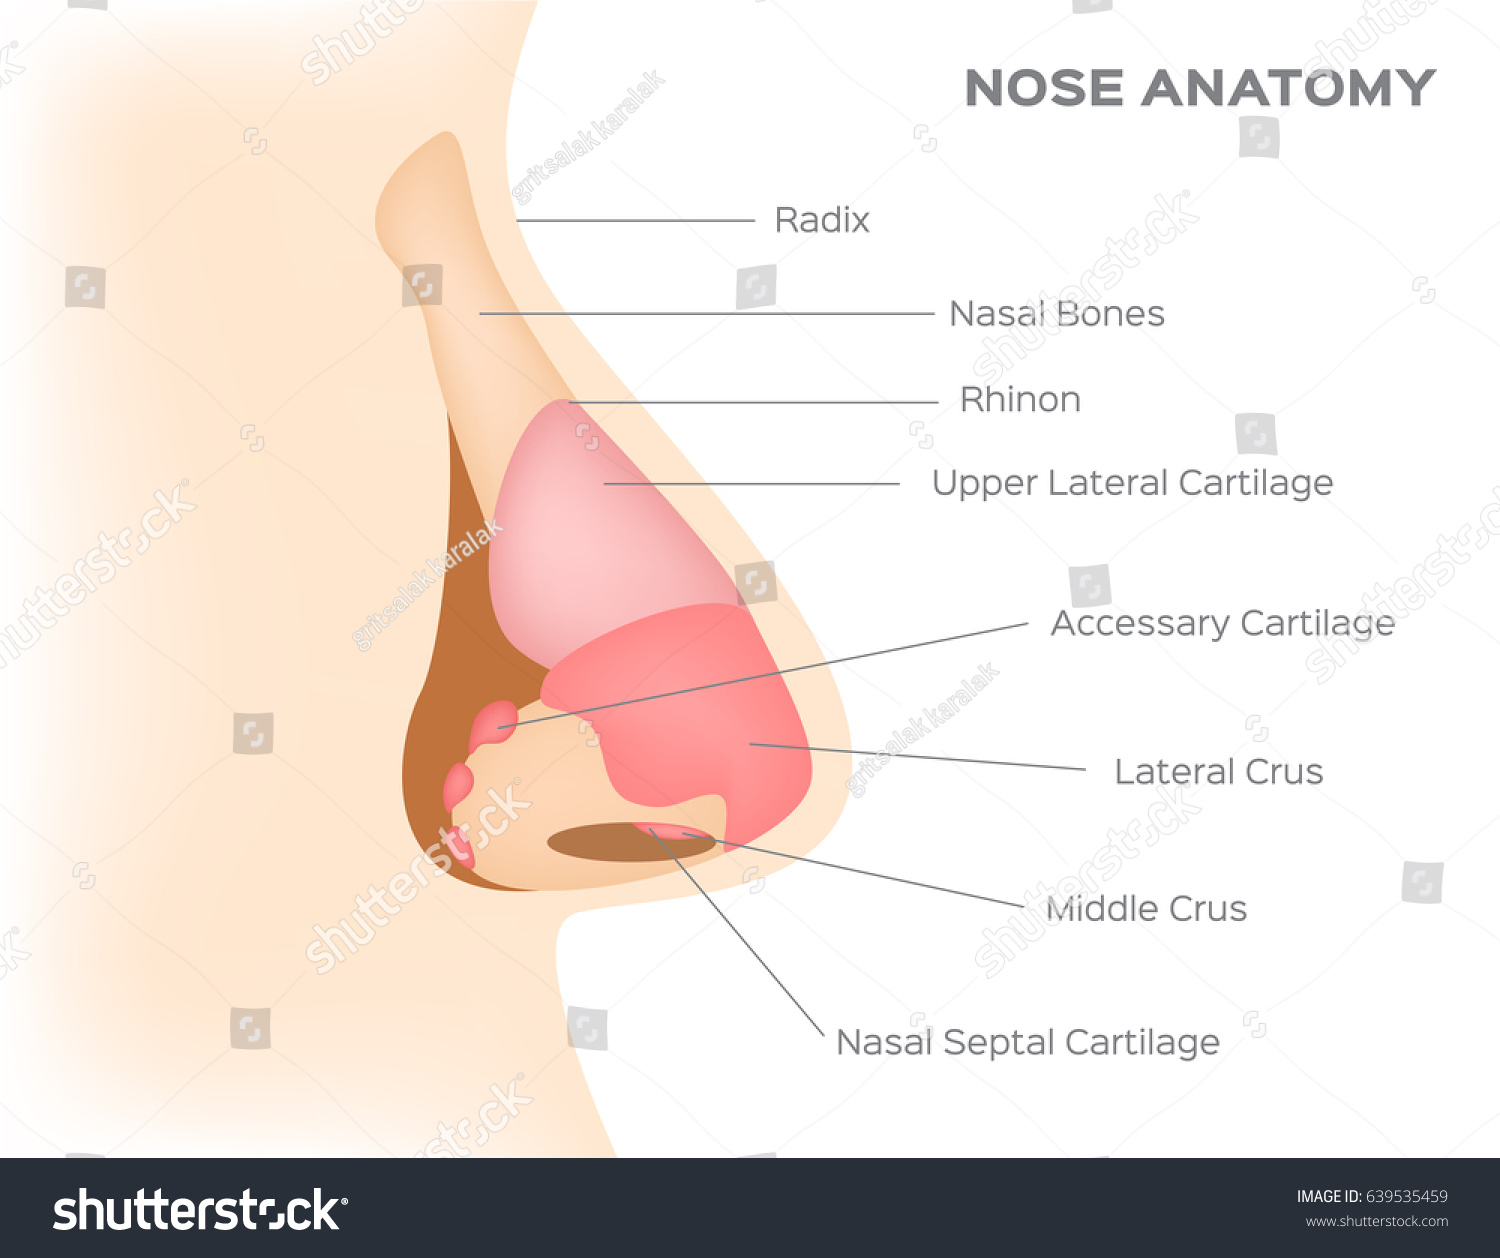 Human Nose Anatomy Vector Stock Vector (Royalty Free) 639535459 ...